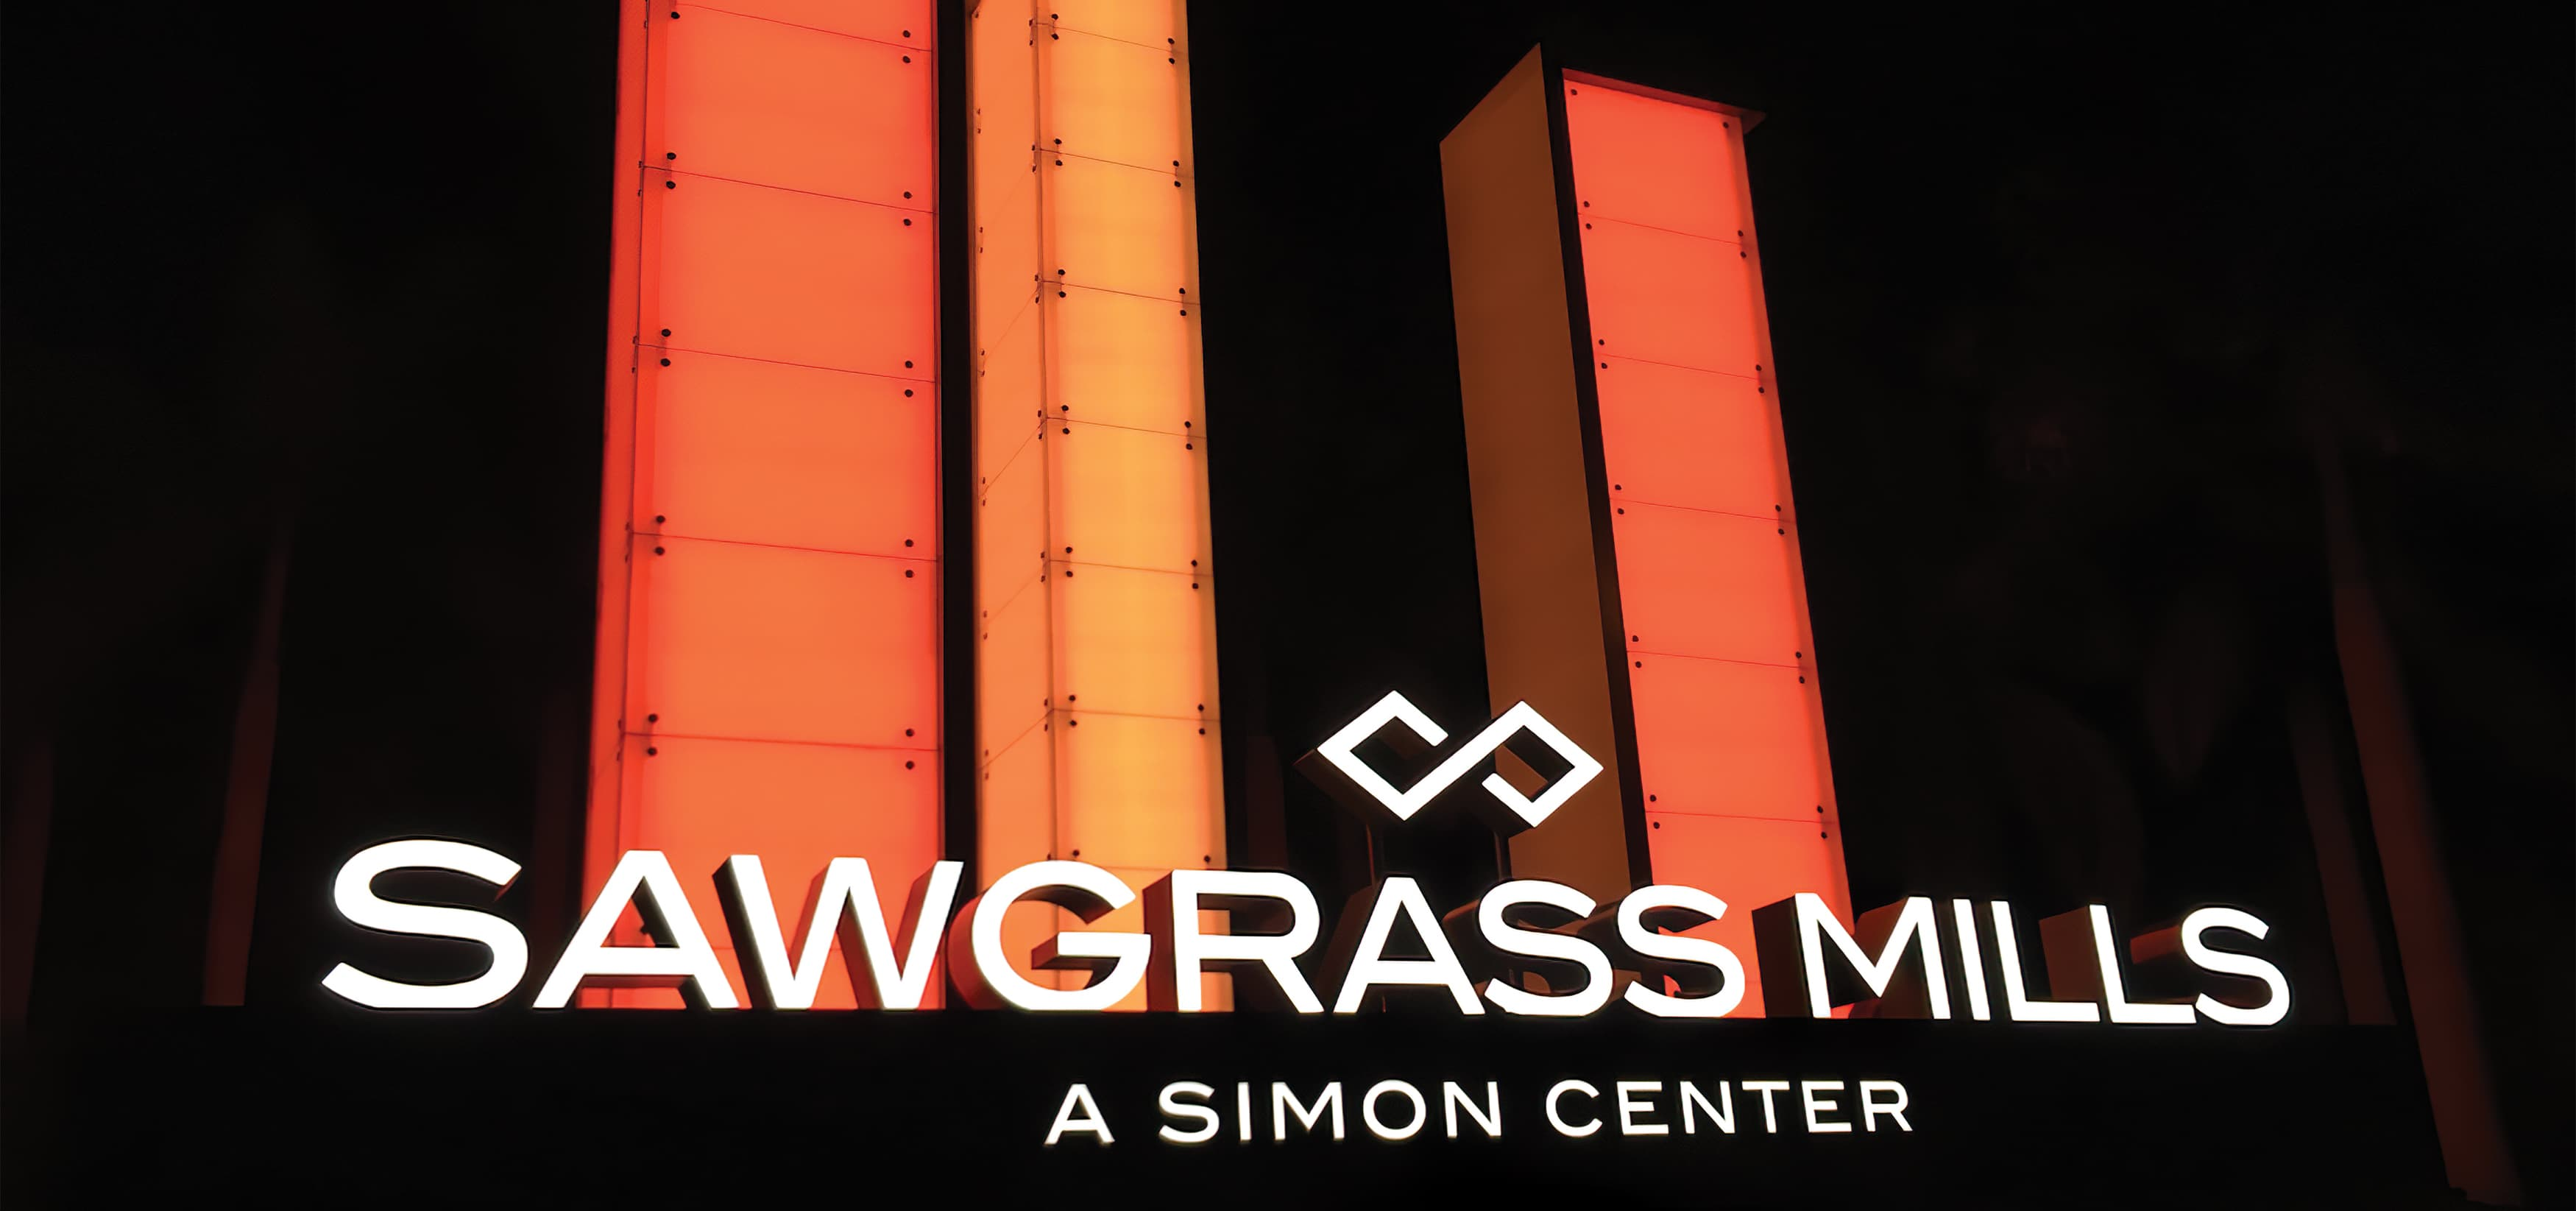 RSM Design worked to develop wayfinding signage, environmental graphics, and placemaking elements for Sawgrass Mills, a Simon Center located in Sunrise, Florida.